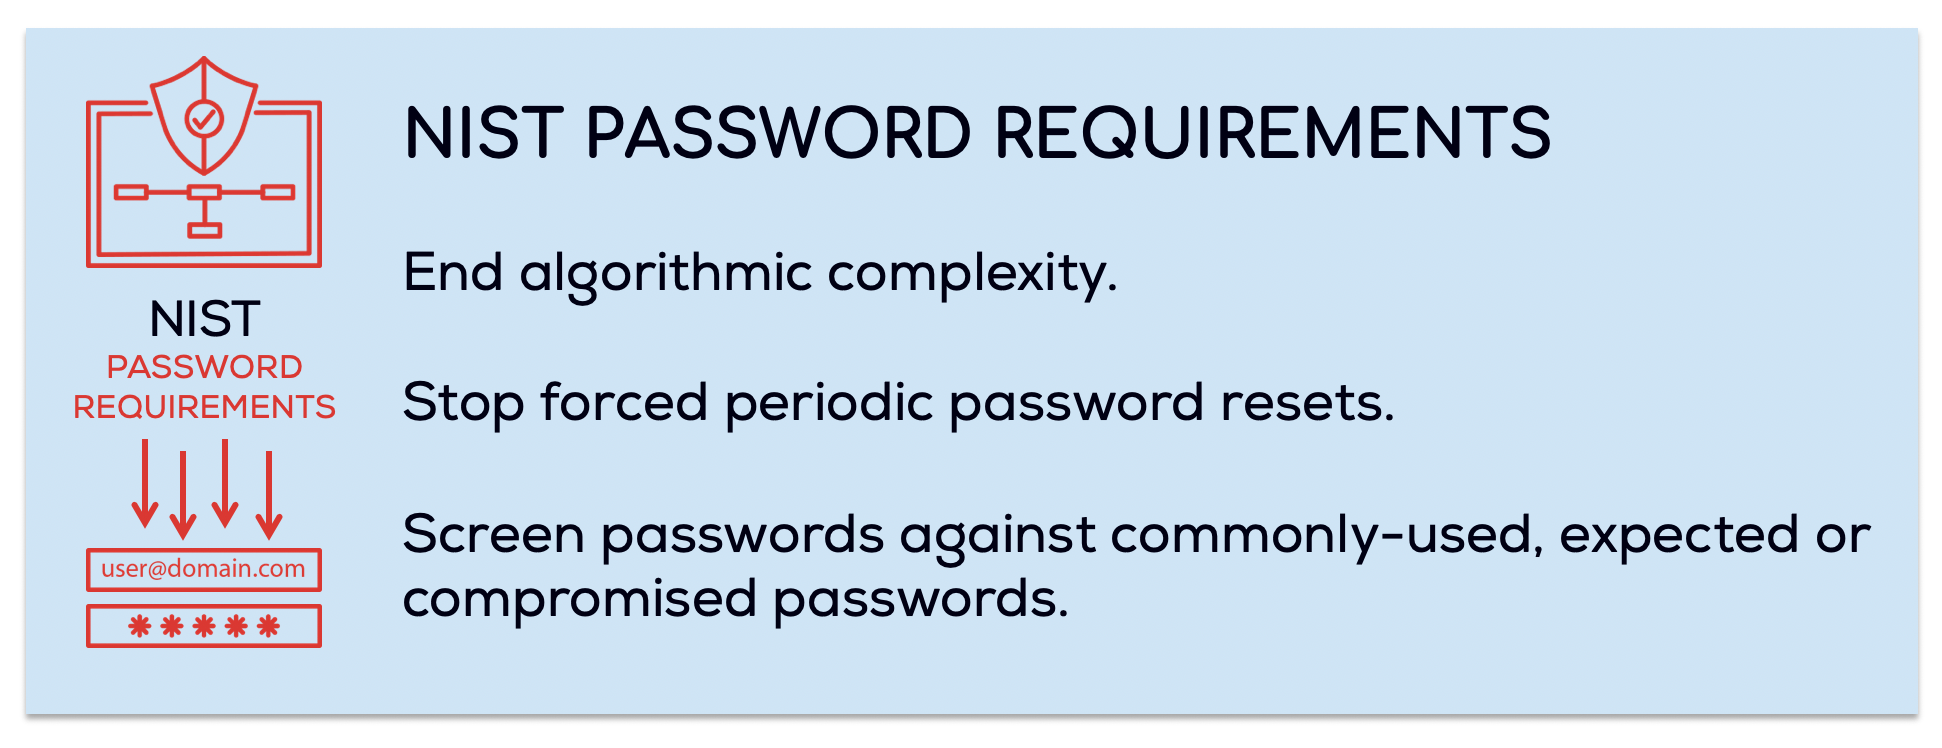 NIST Password Requirements for 2020